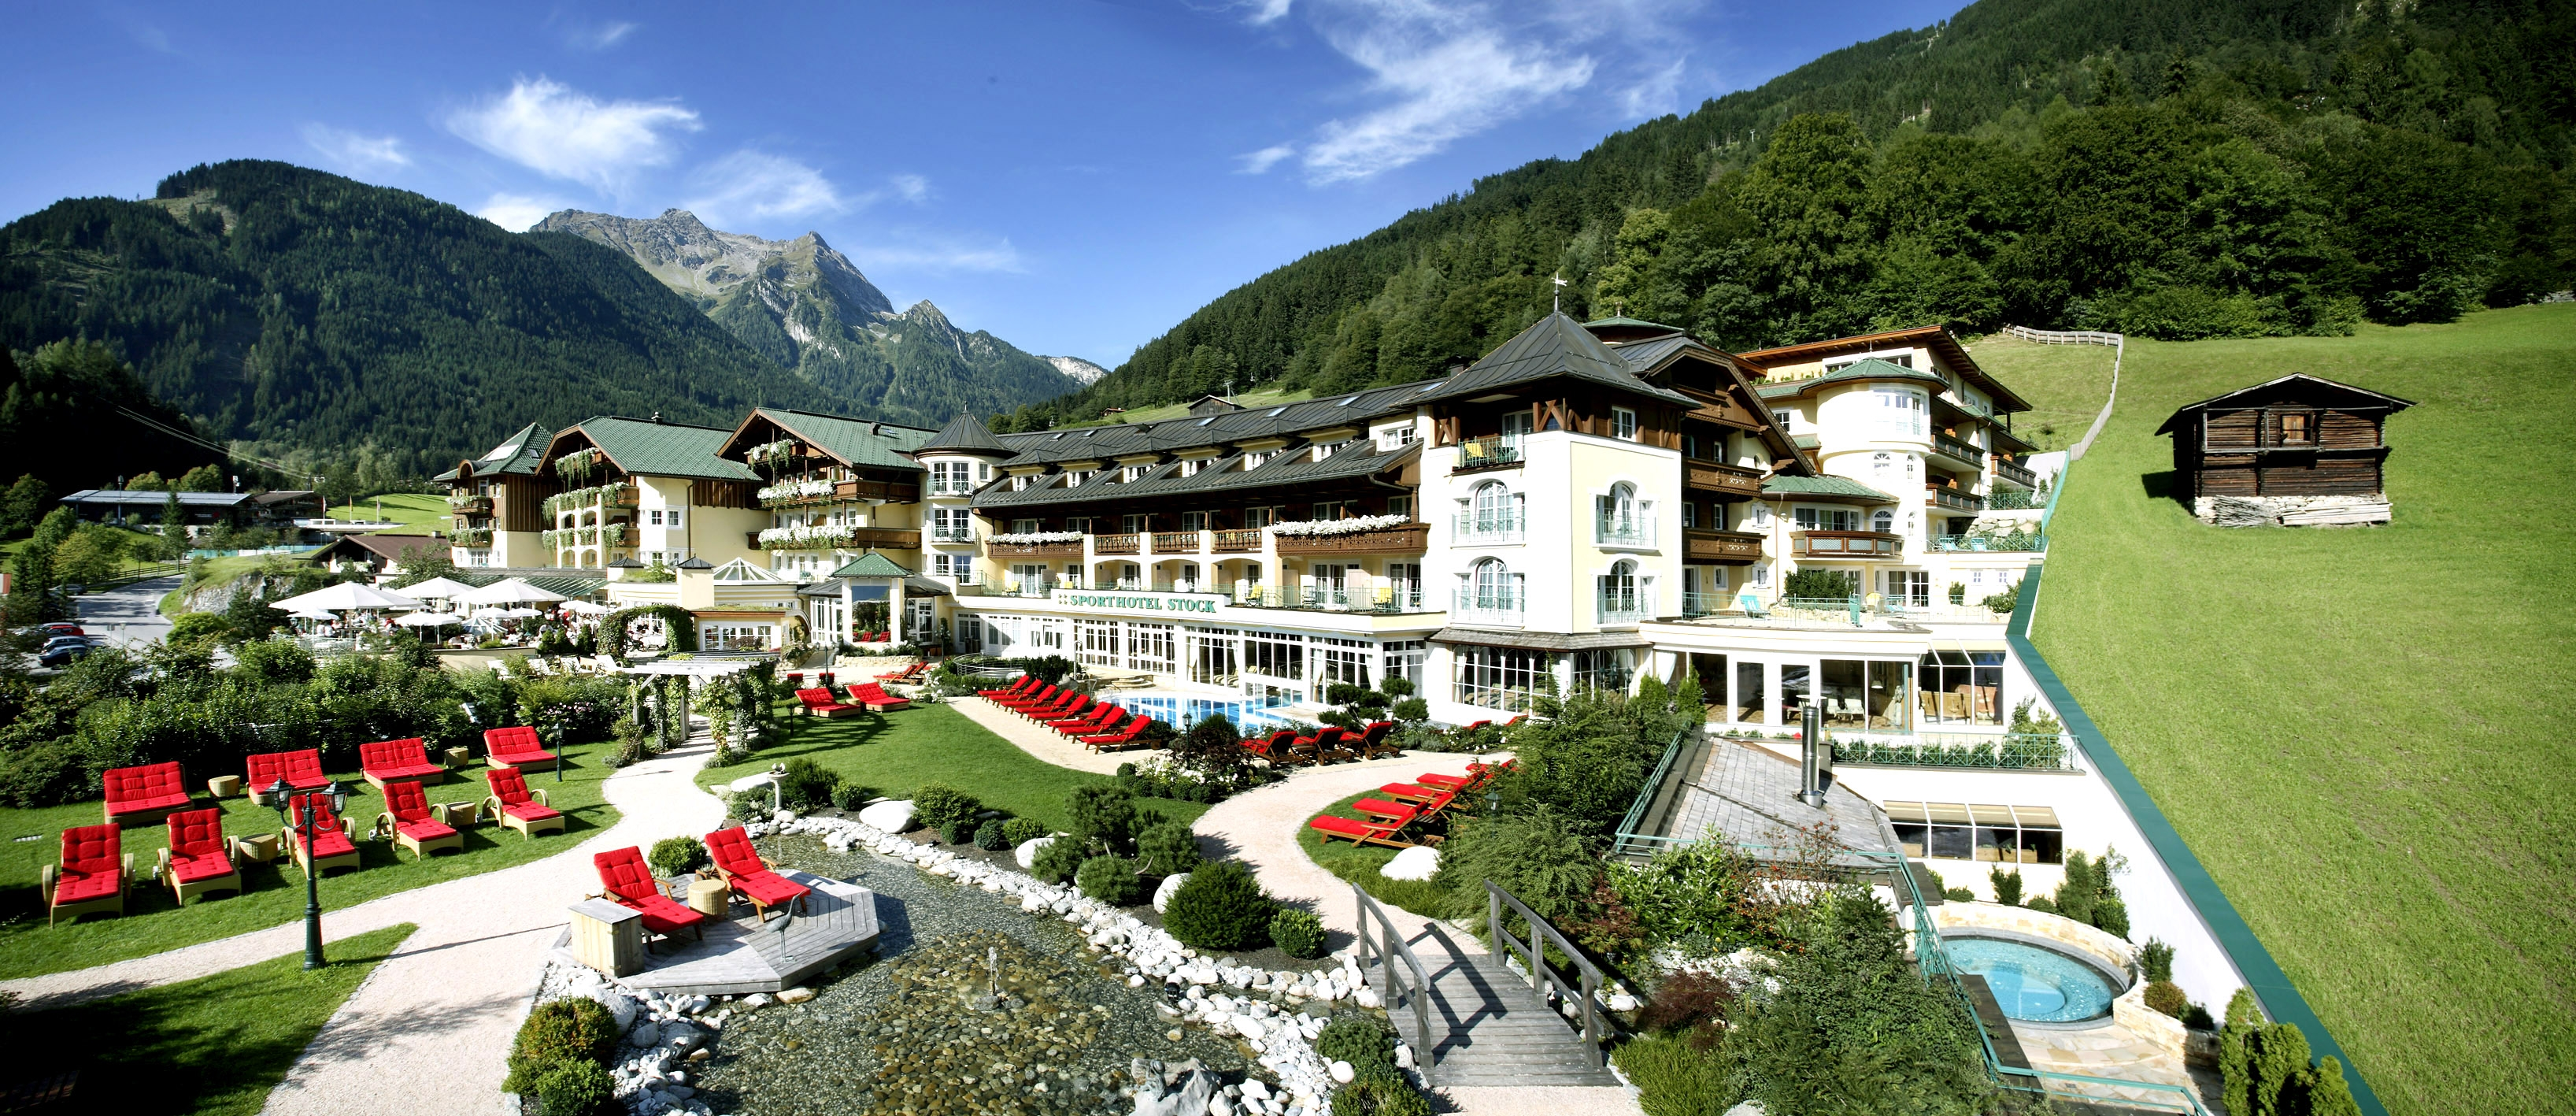 Stock resort mit neuem auftritt neuer name neues design for Design hotel zillertal